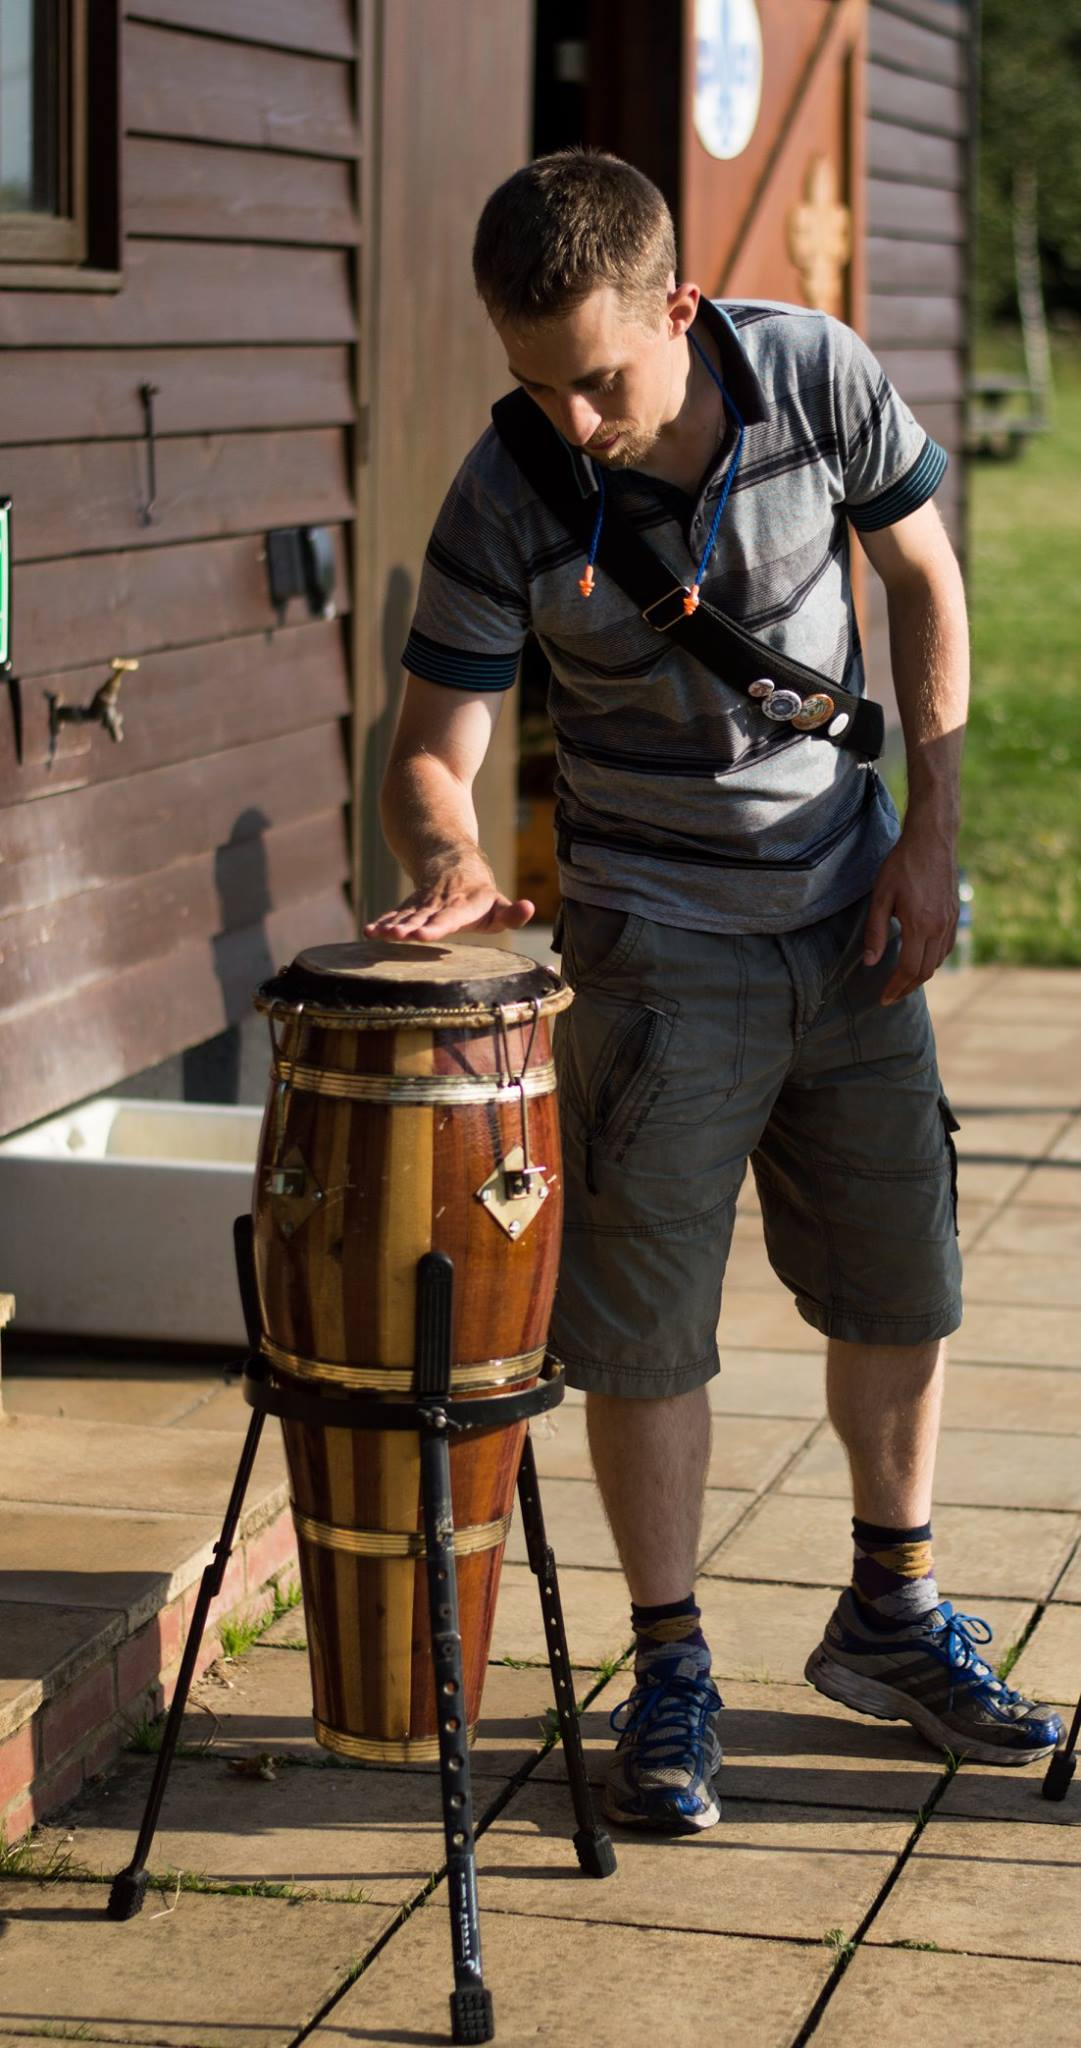 Learn Atabaque drums